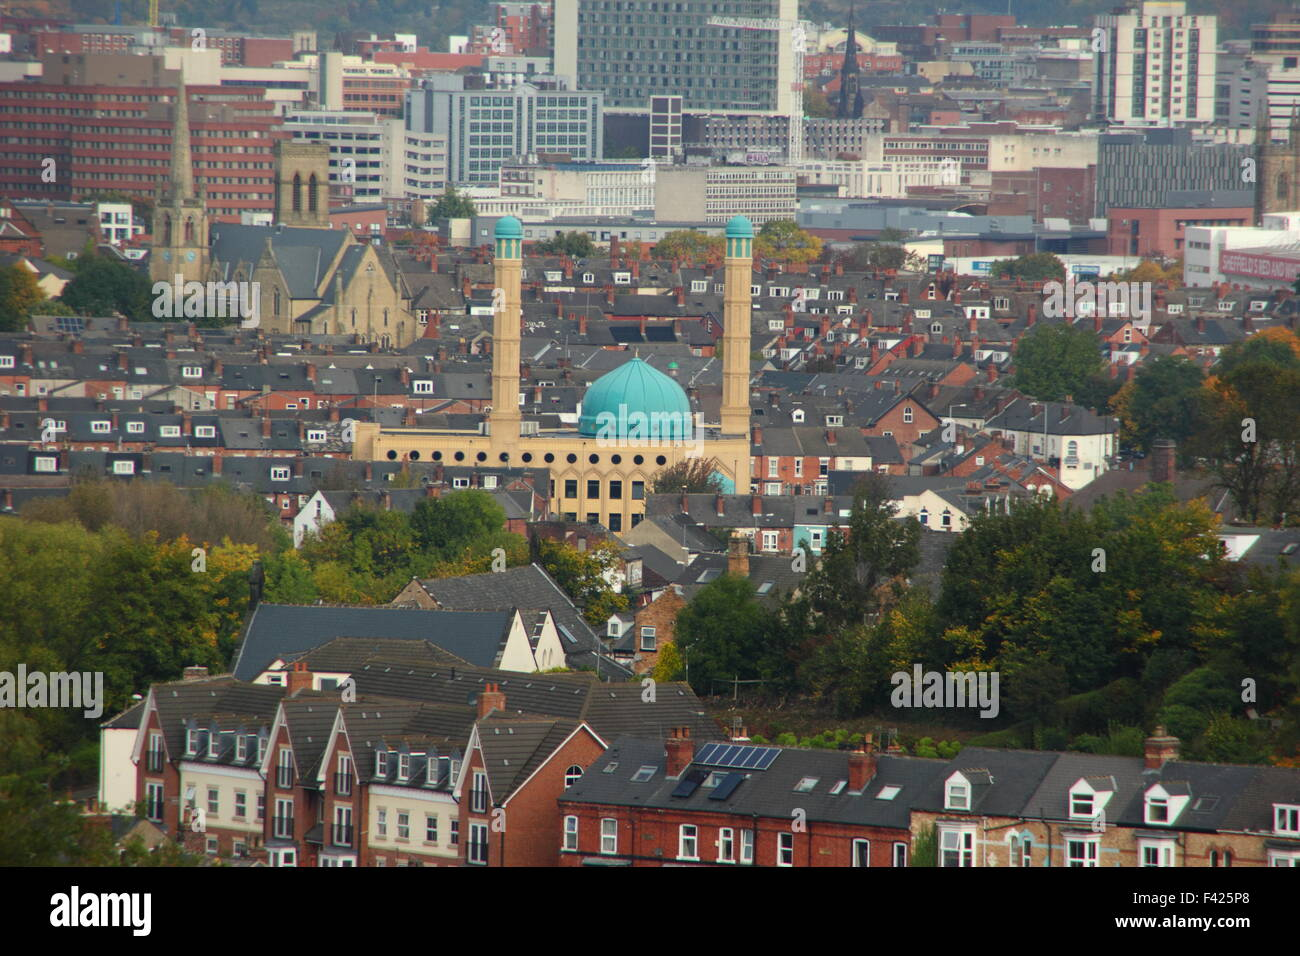 a-view-of-sheffield-city-skyline-featuring-the-blue-dome-of-madina-F425P8.jpg